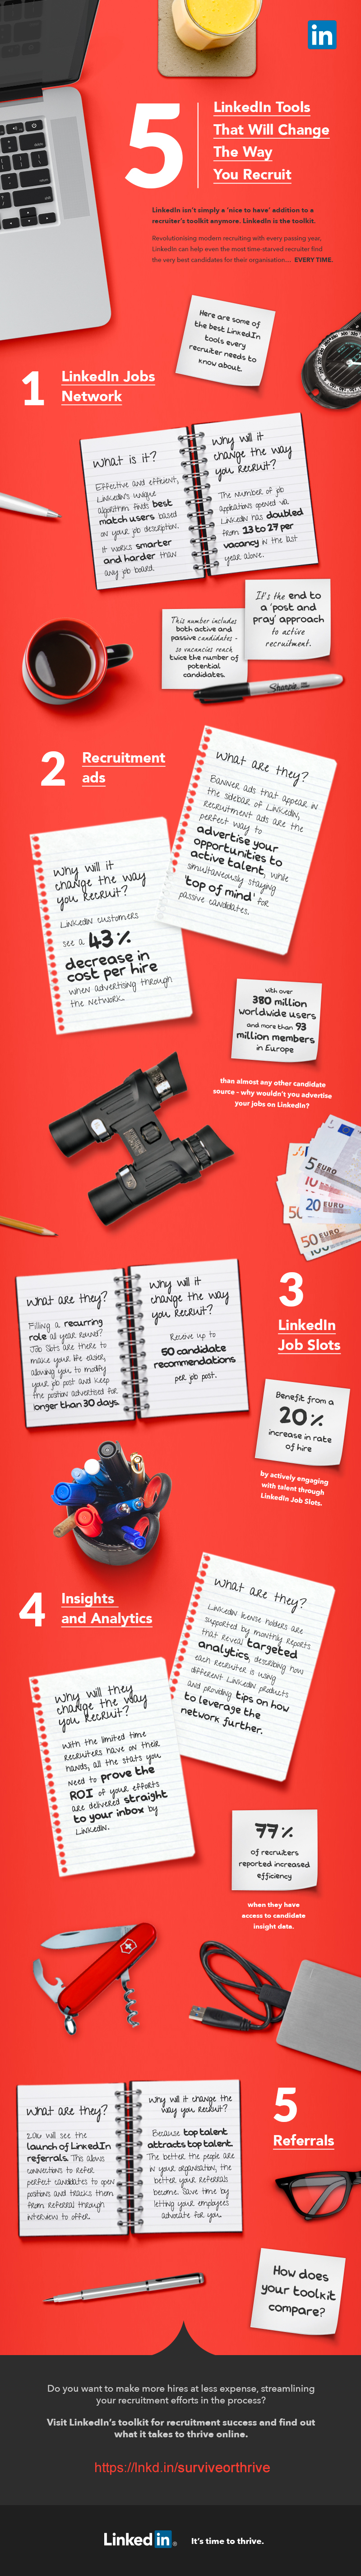 5 LinkedIn Tools That Will Change The Way You Recruit